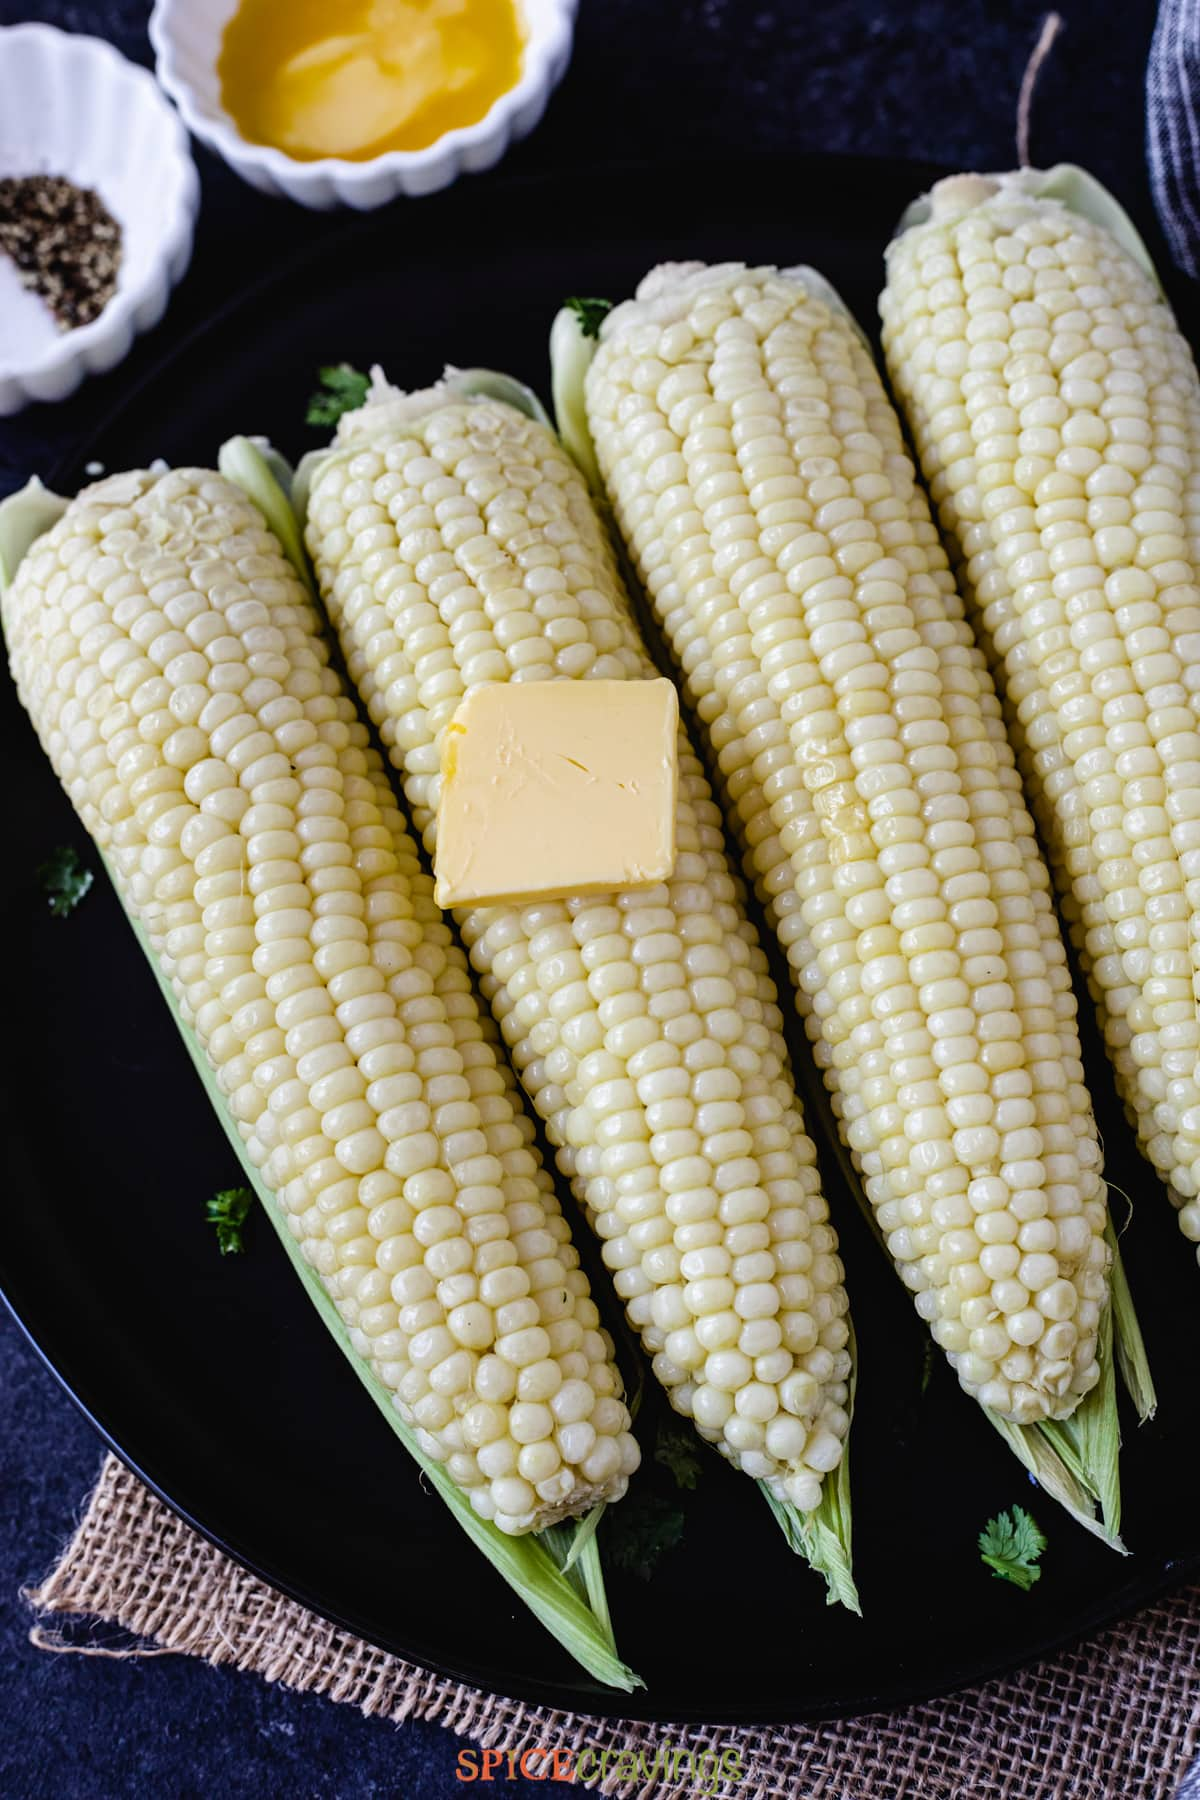 four cobs of corn on a plate topped with butter